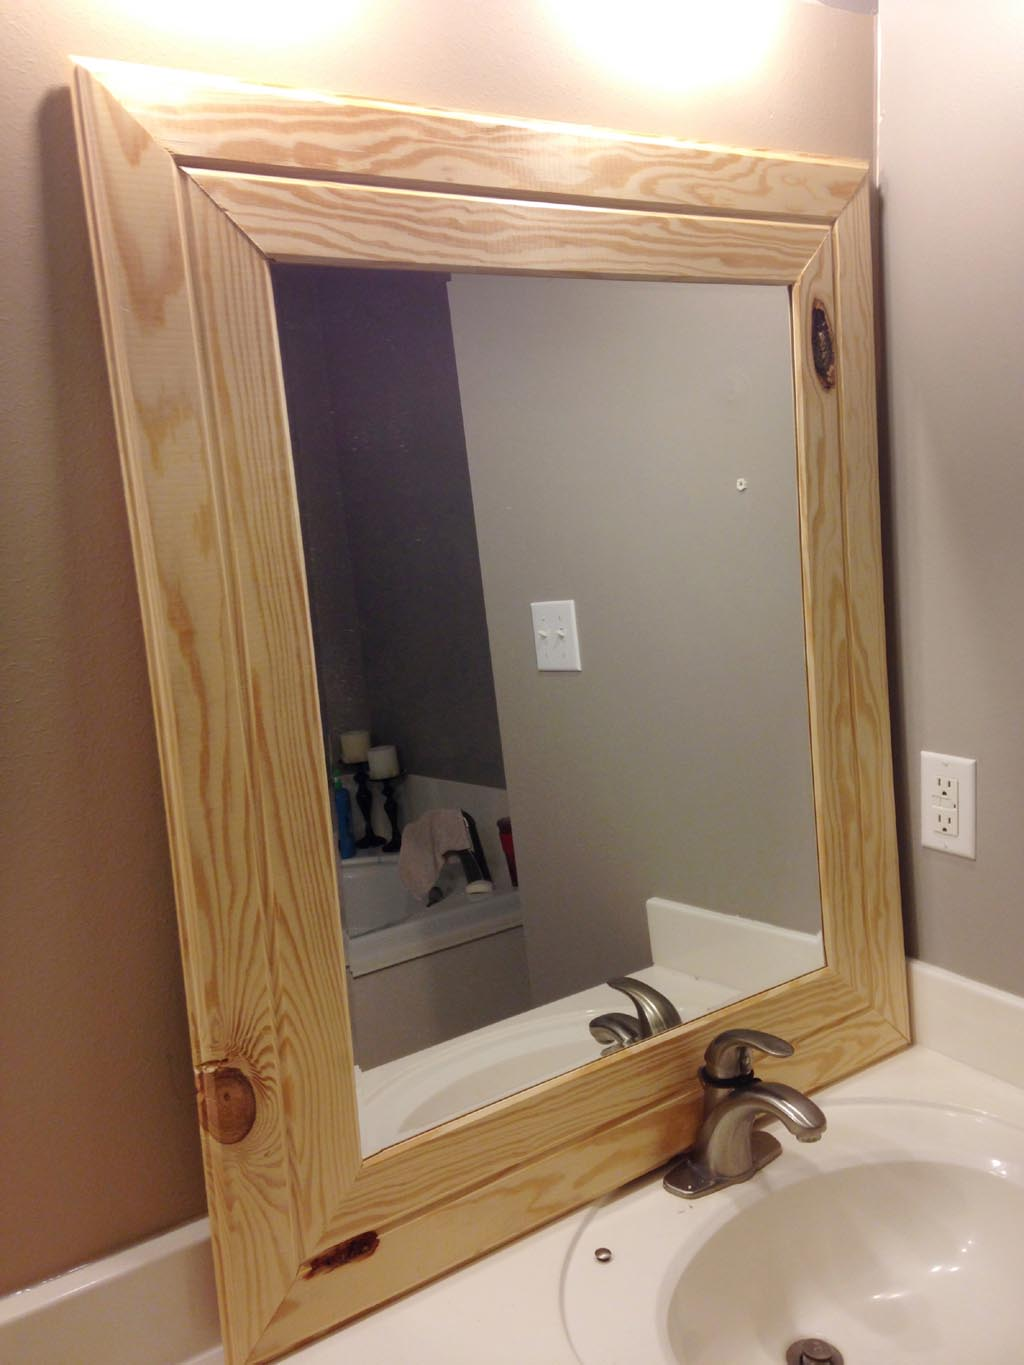 Cheap wood framed mirrors best decor things